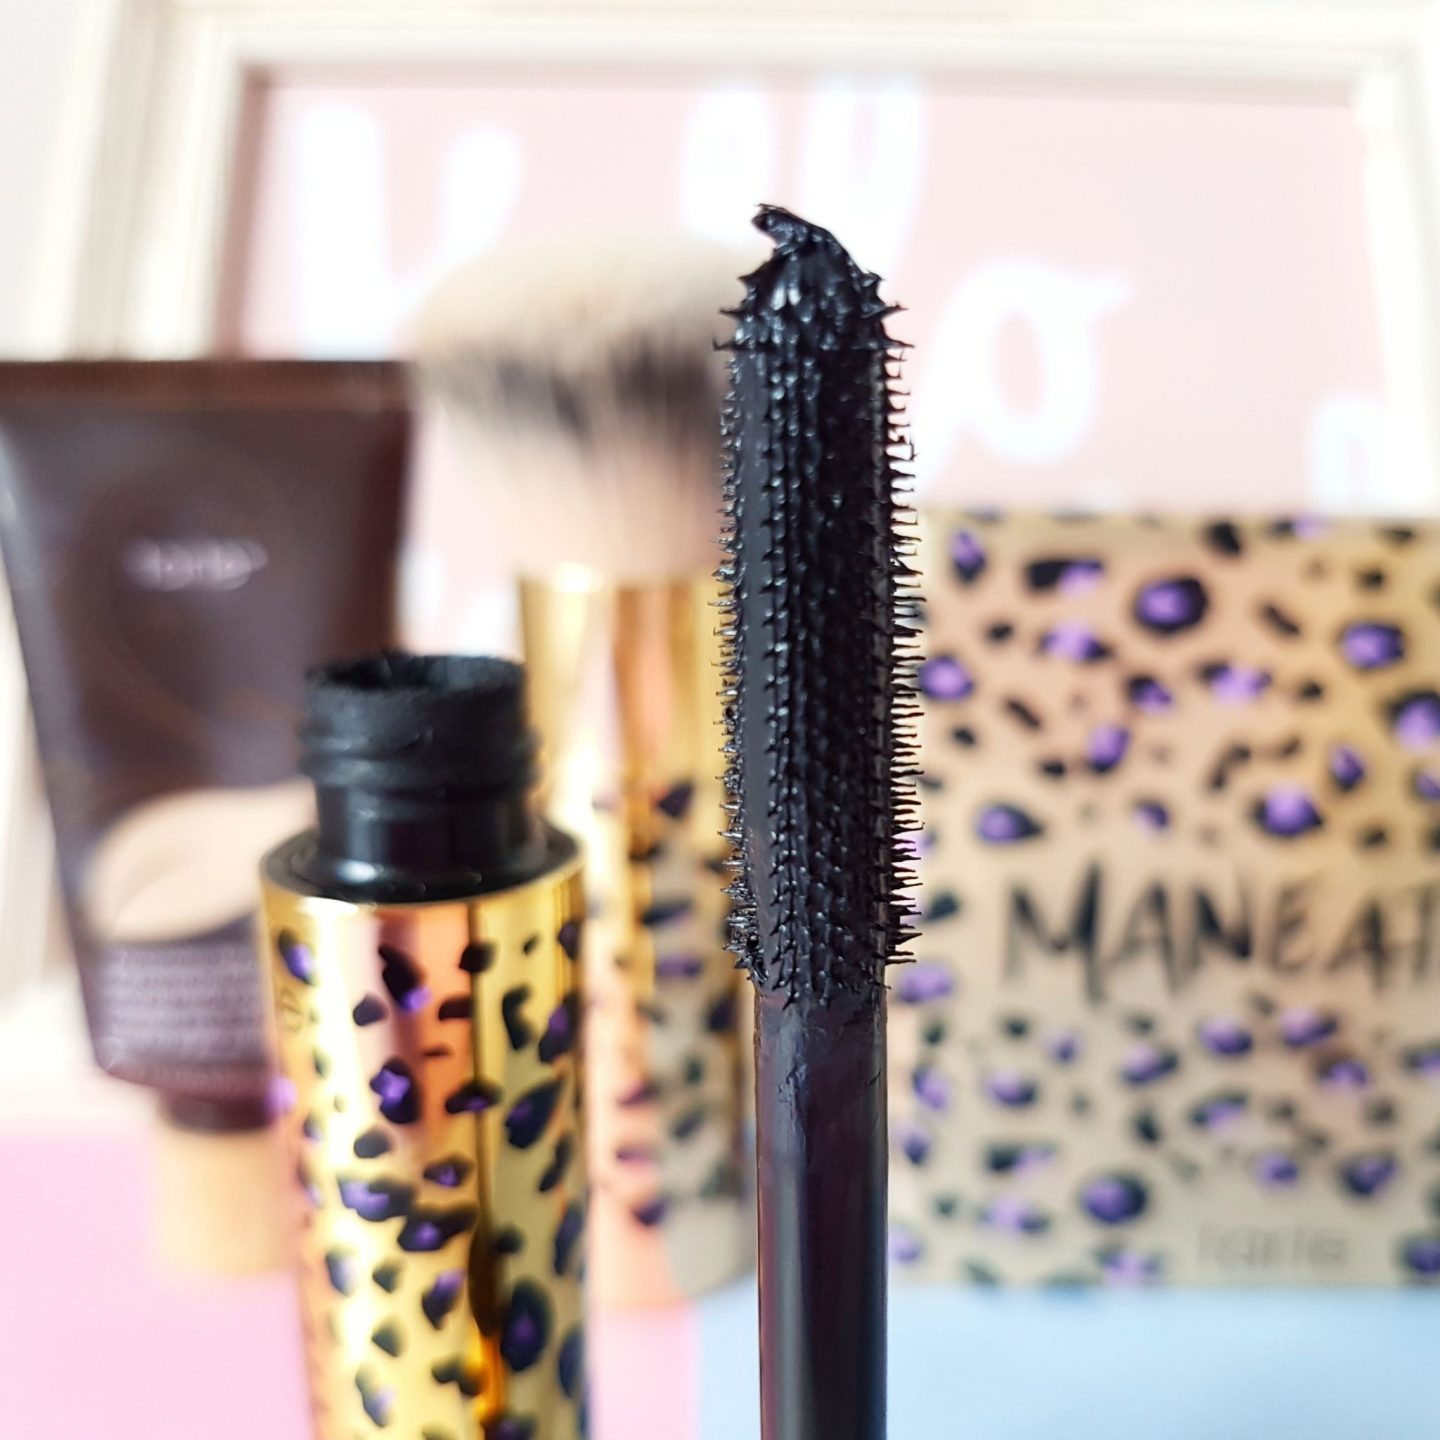 The Tarte Maneater Make-up Collection | Mascara